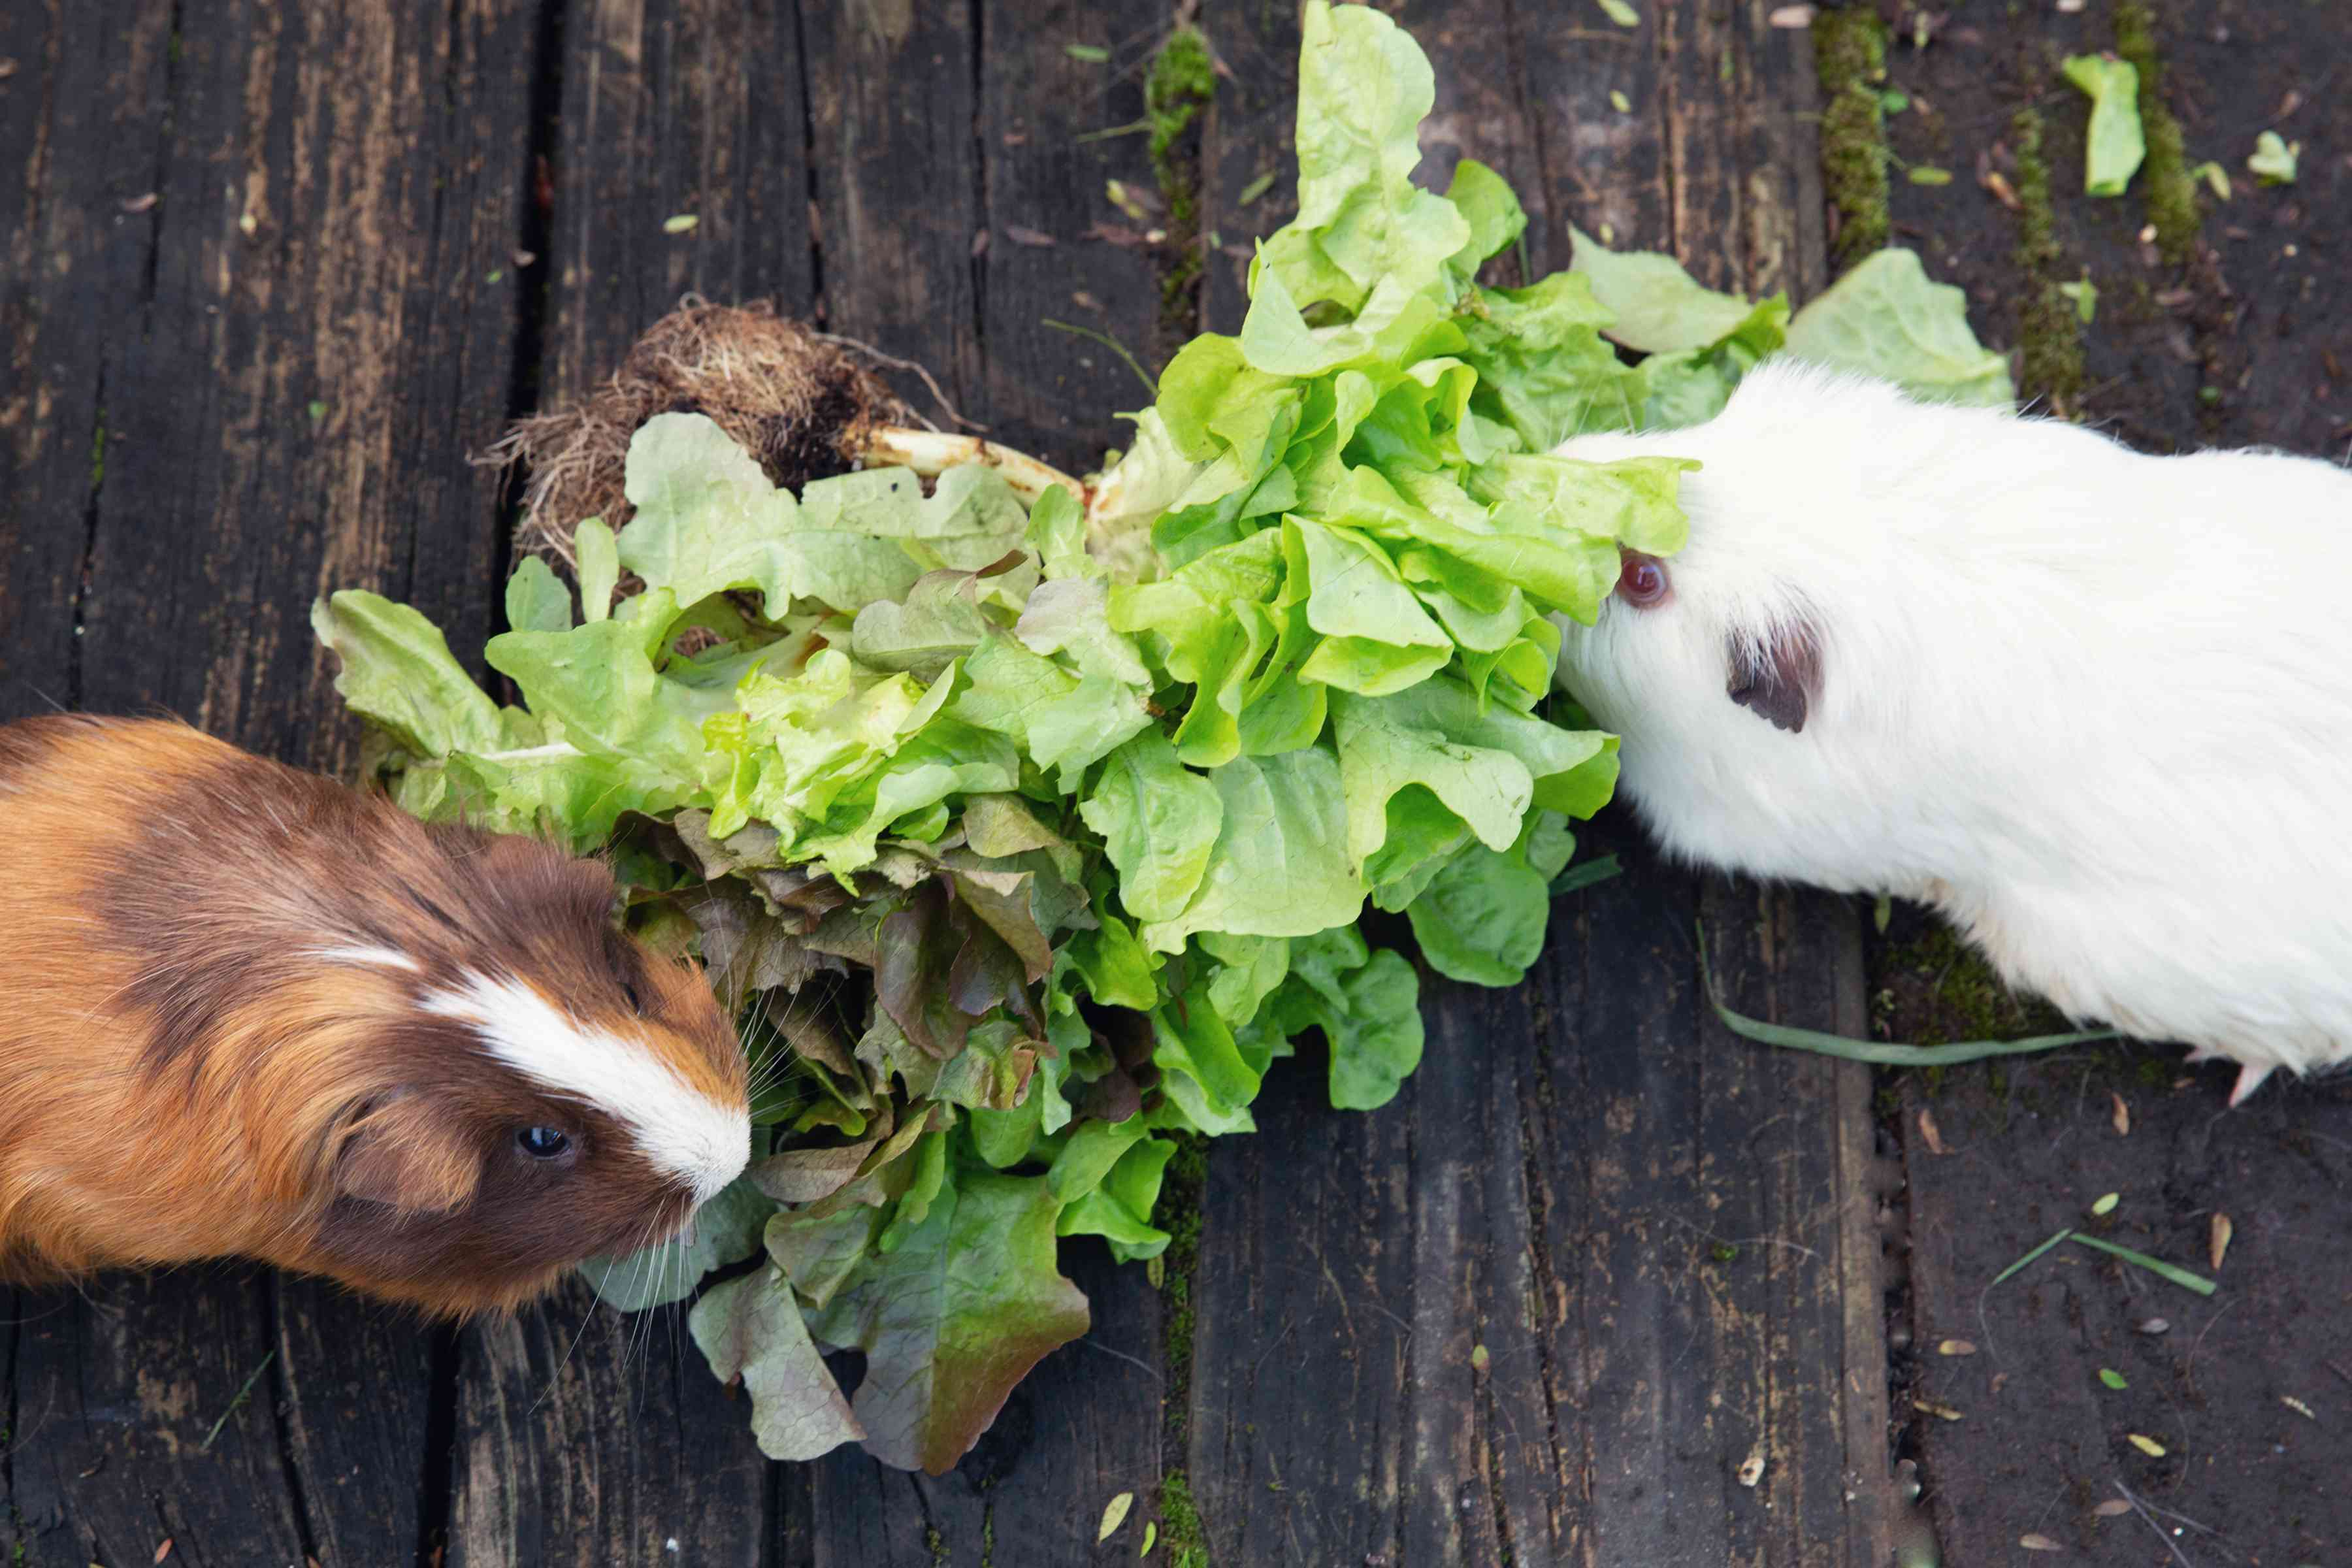 Brown and white guinea pigs eating head of lettuce